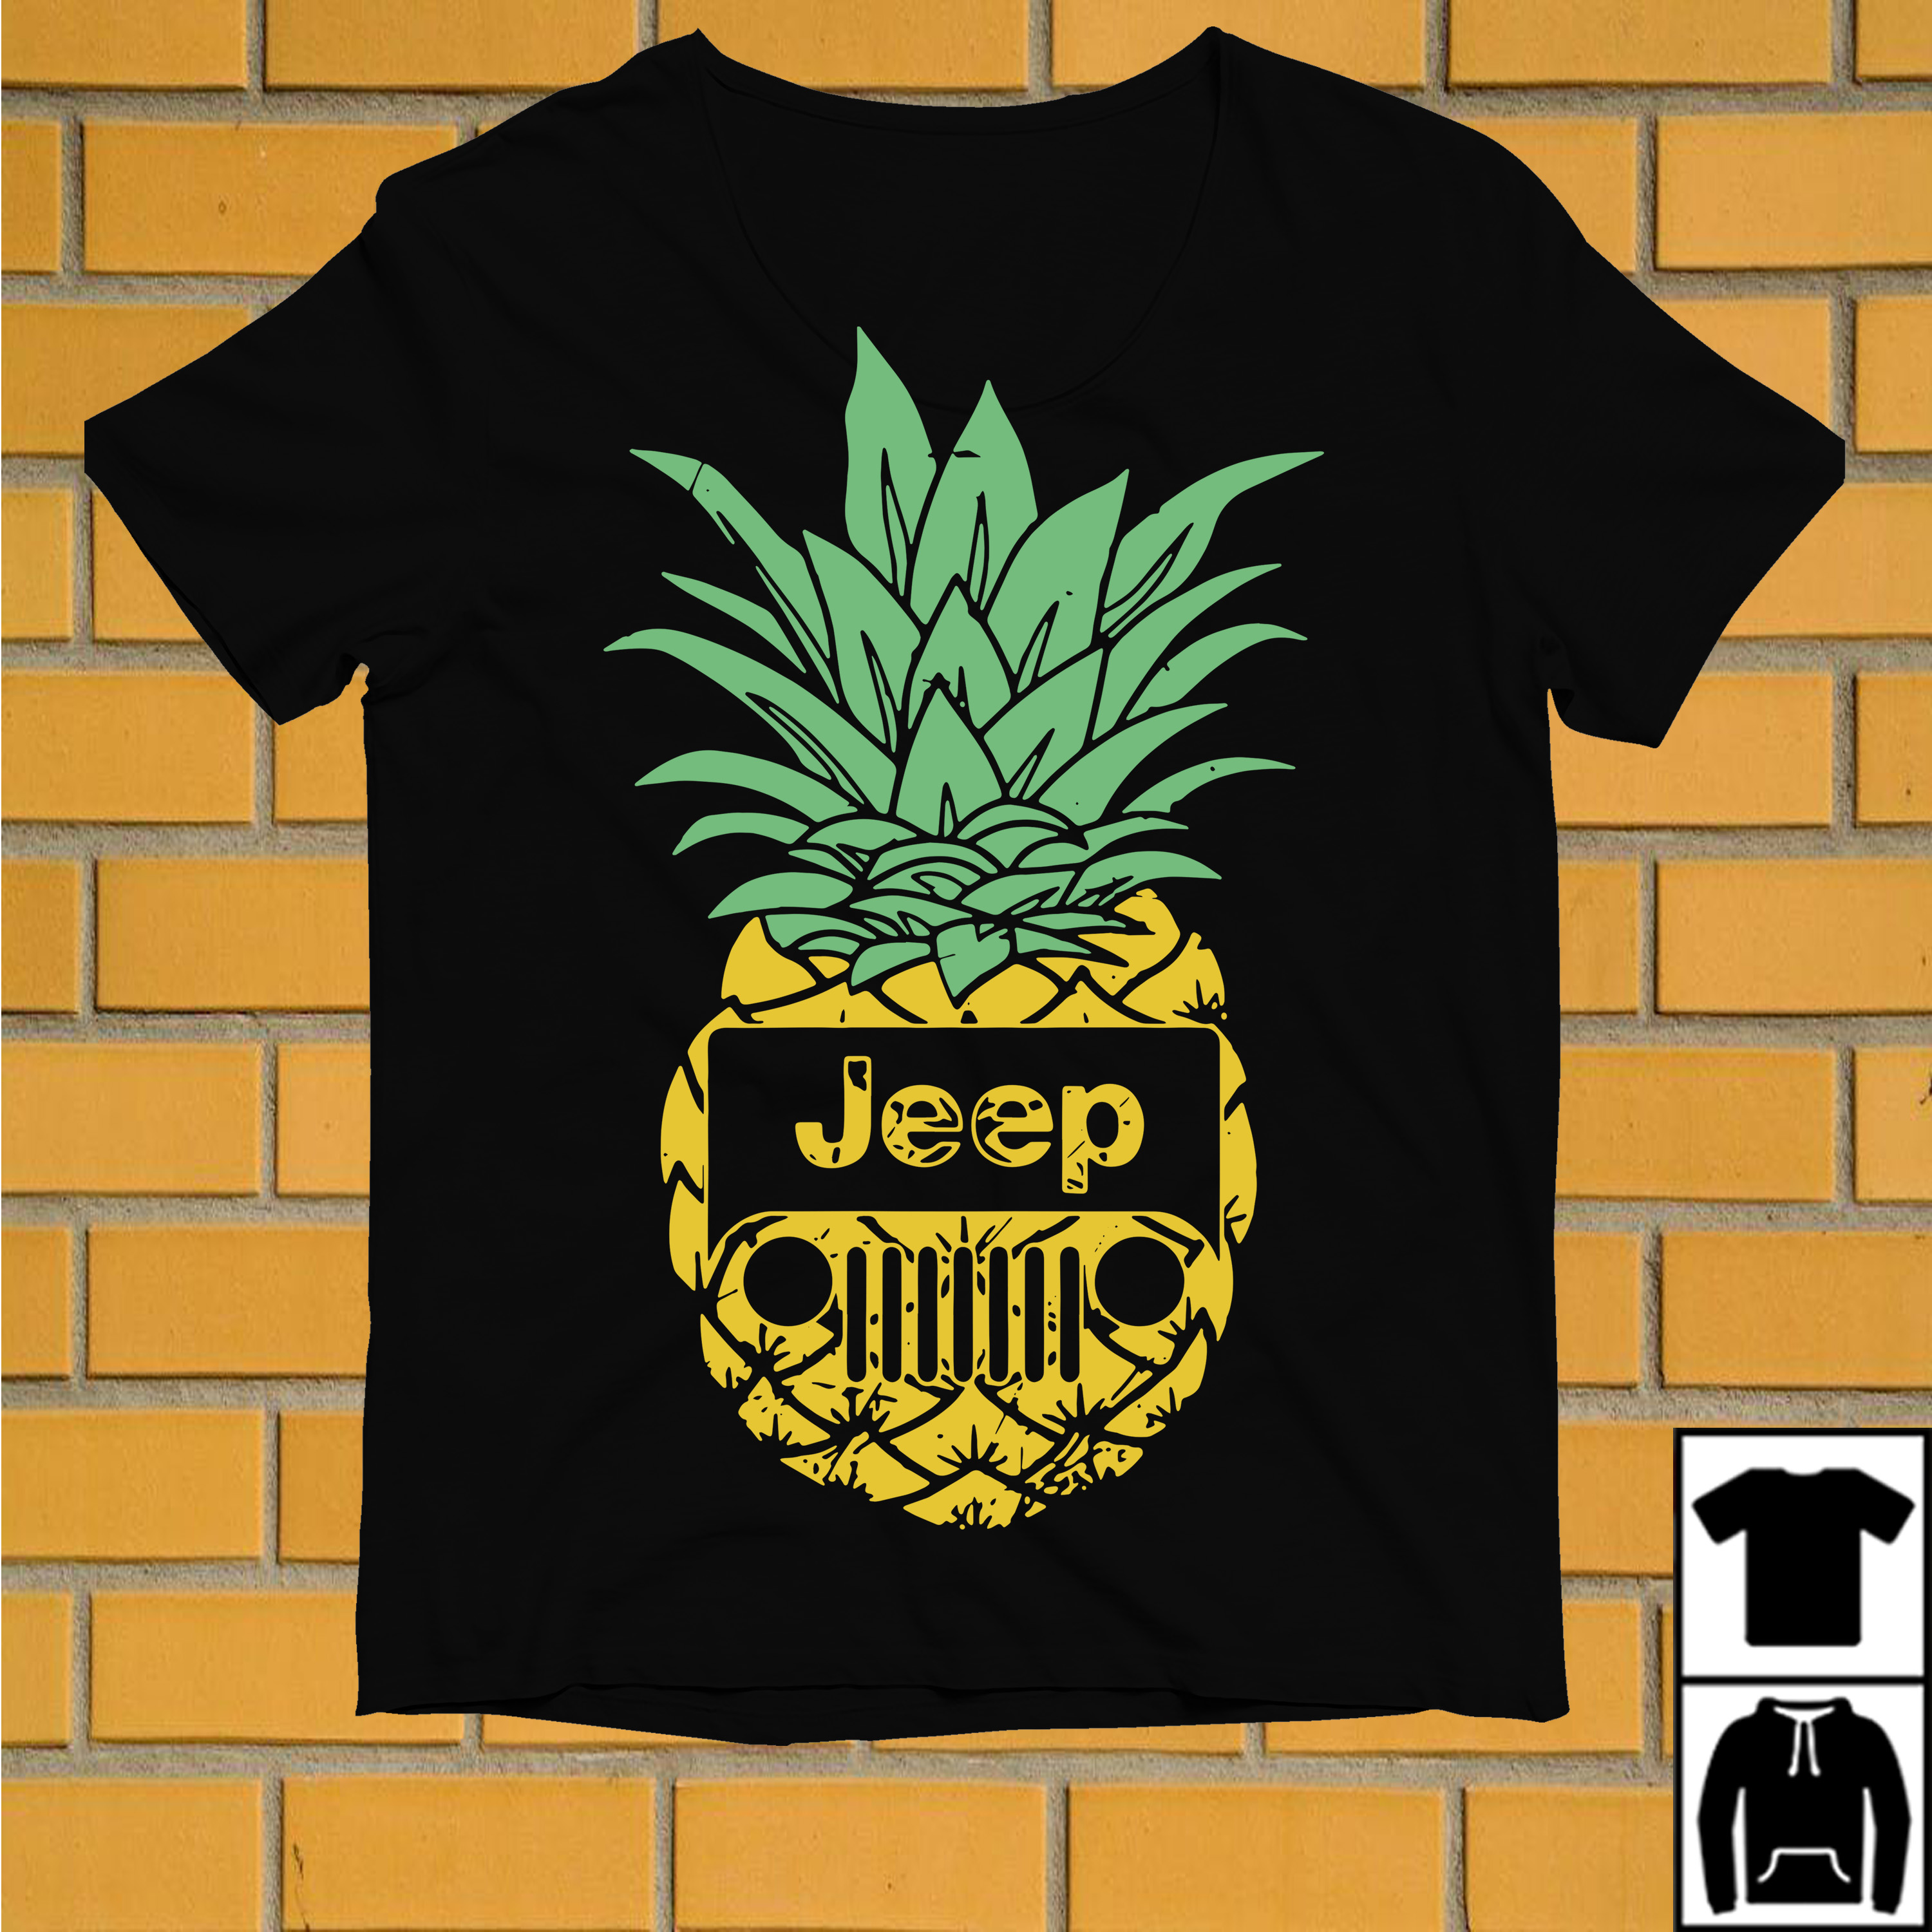 Oficial Pineapple jeep shirt